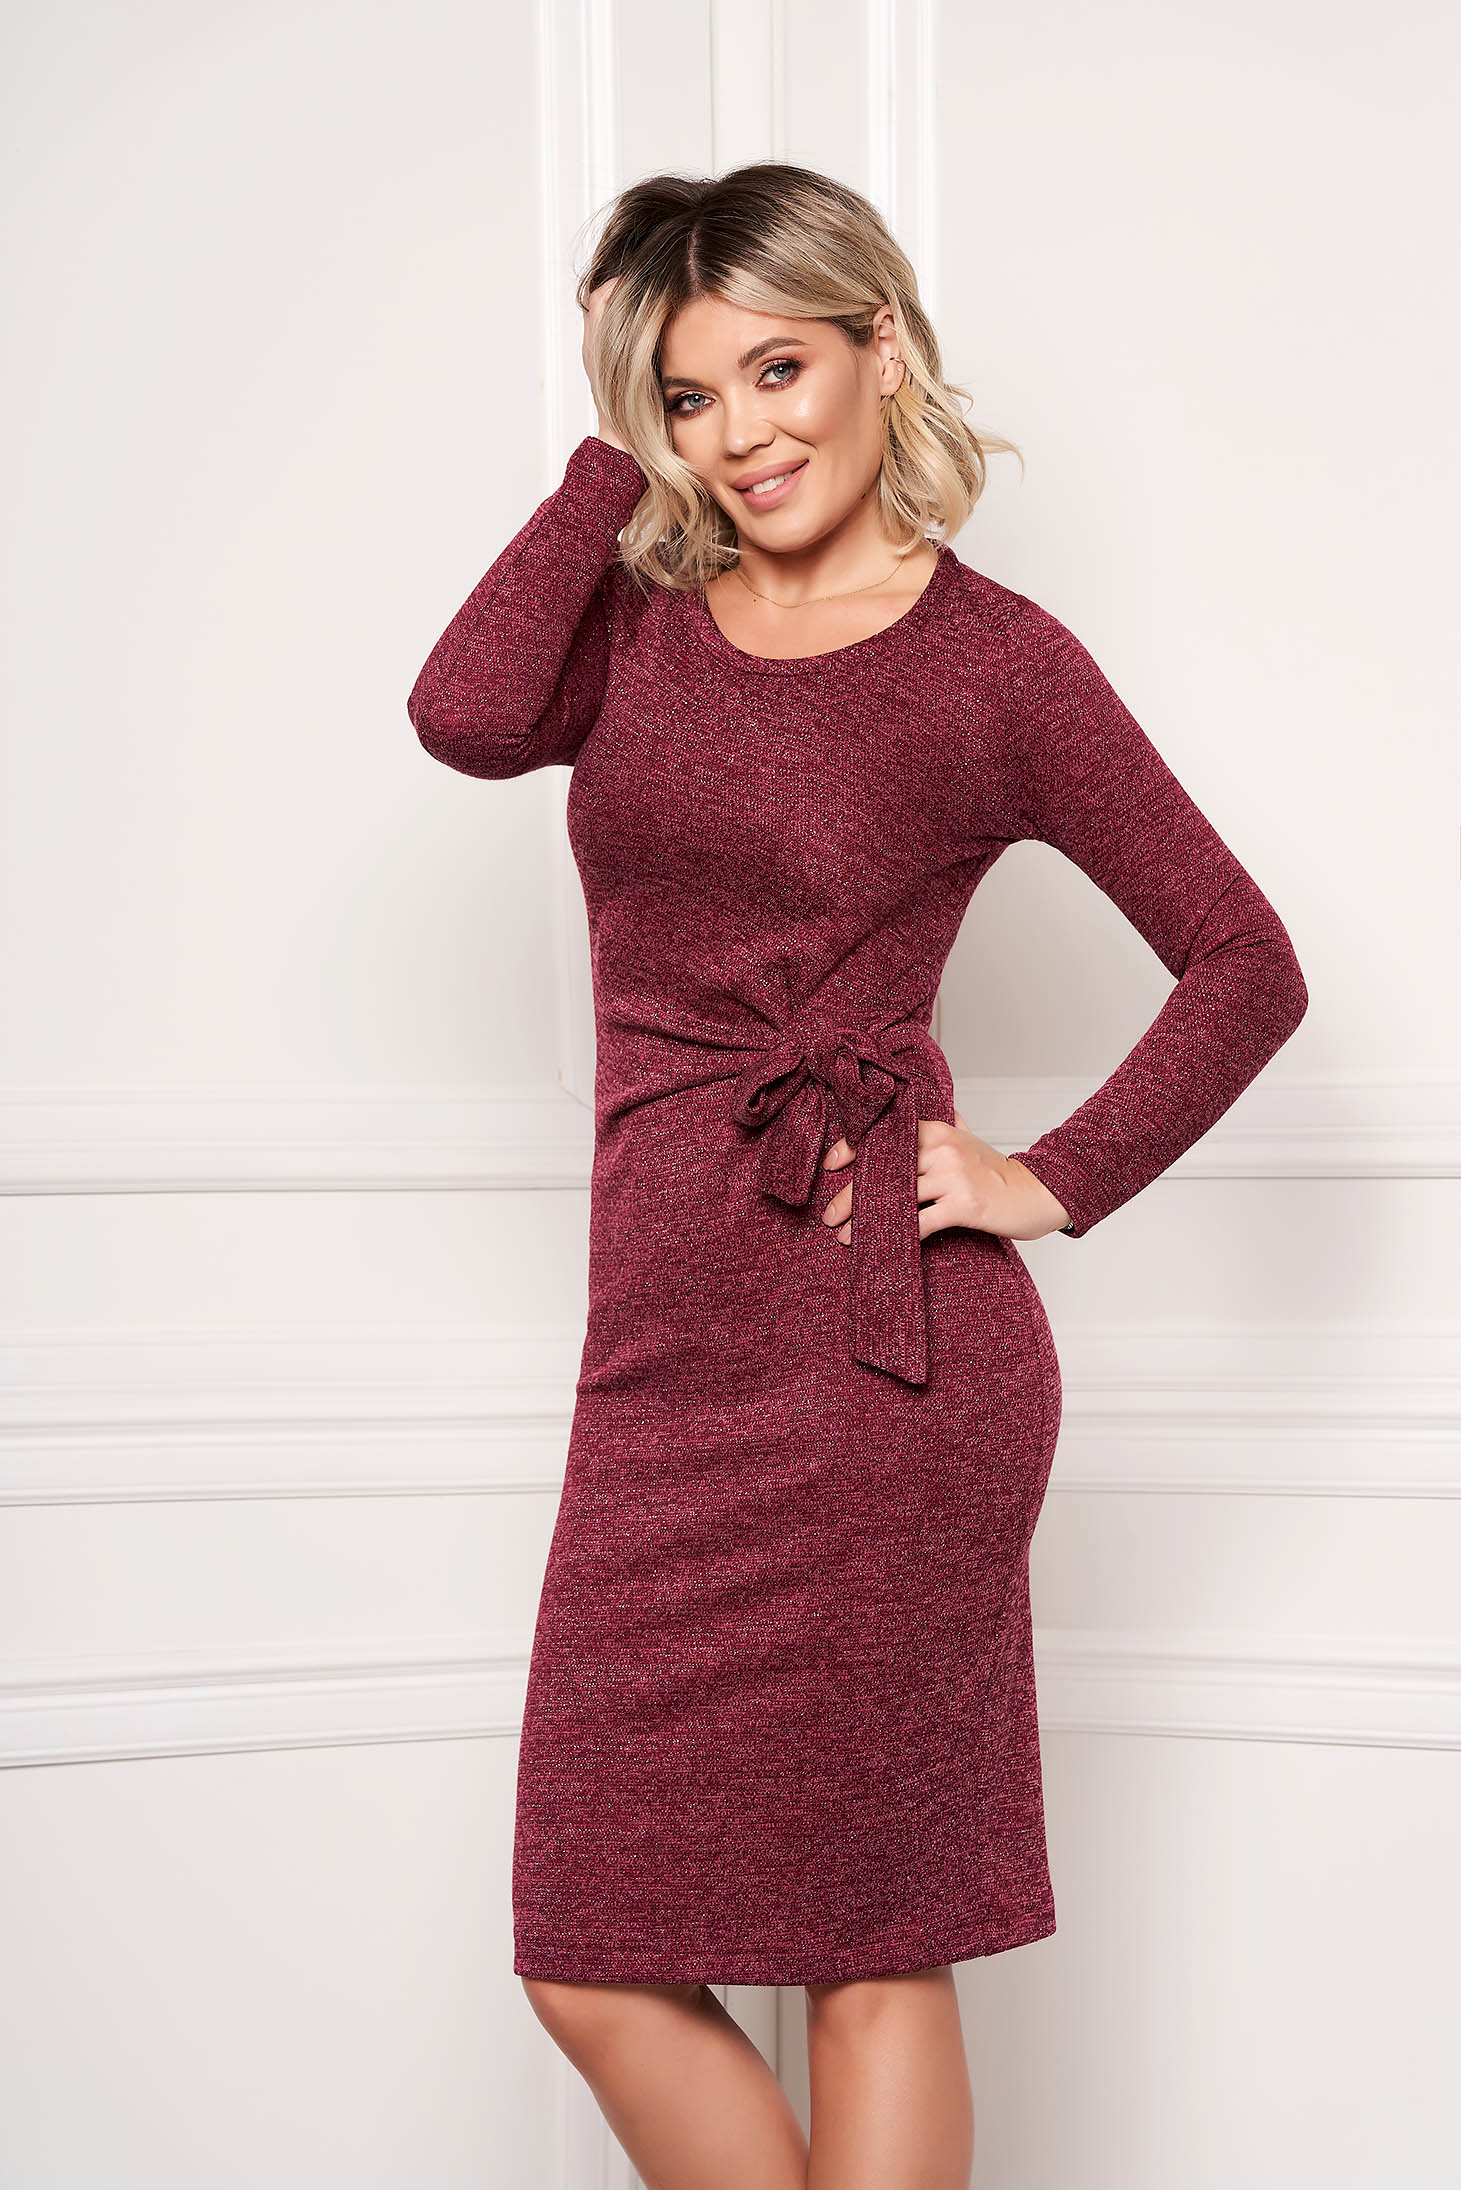 StarShinerS burgundy dress elegant midi pencil knitted fabric accessorized with tied waistband without clothing